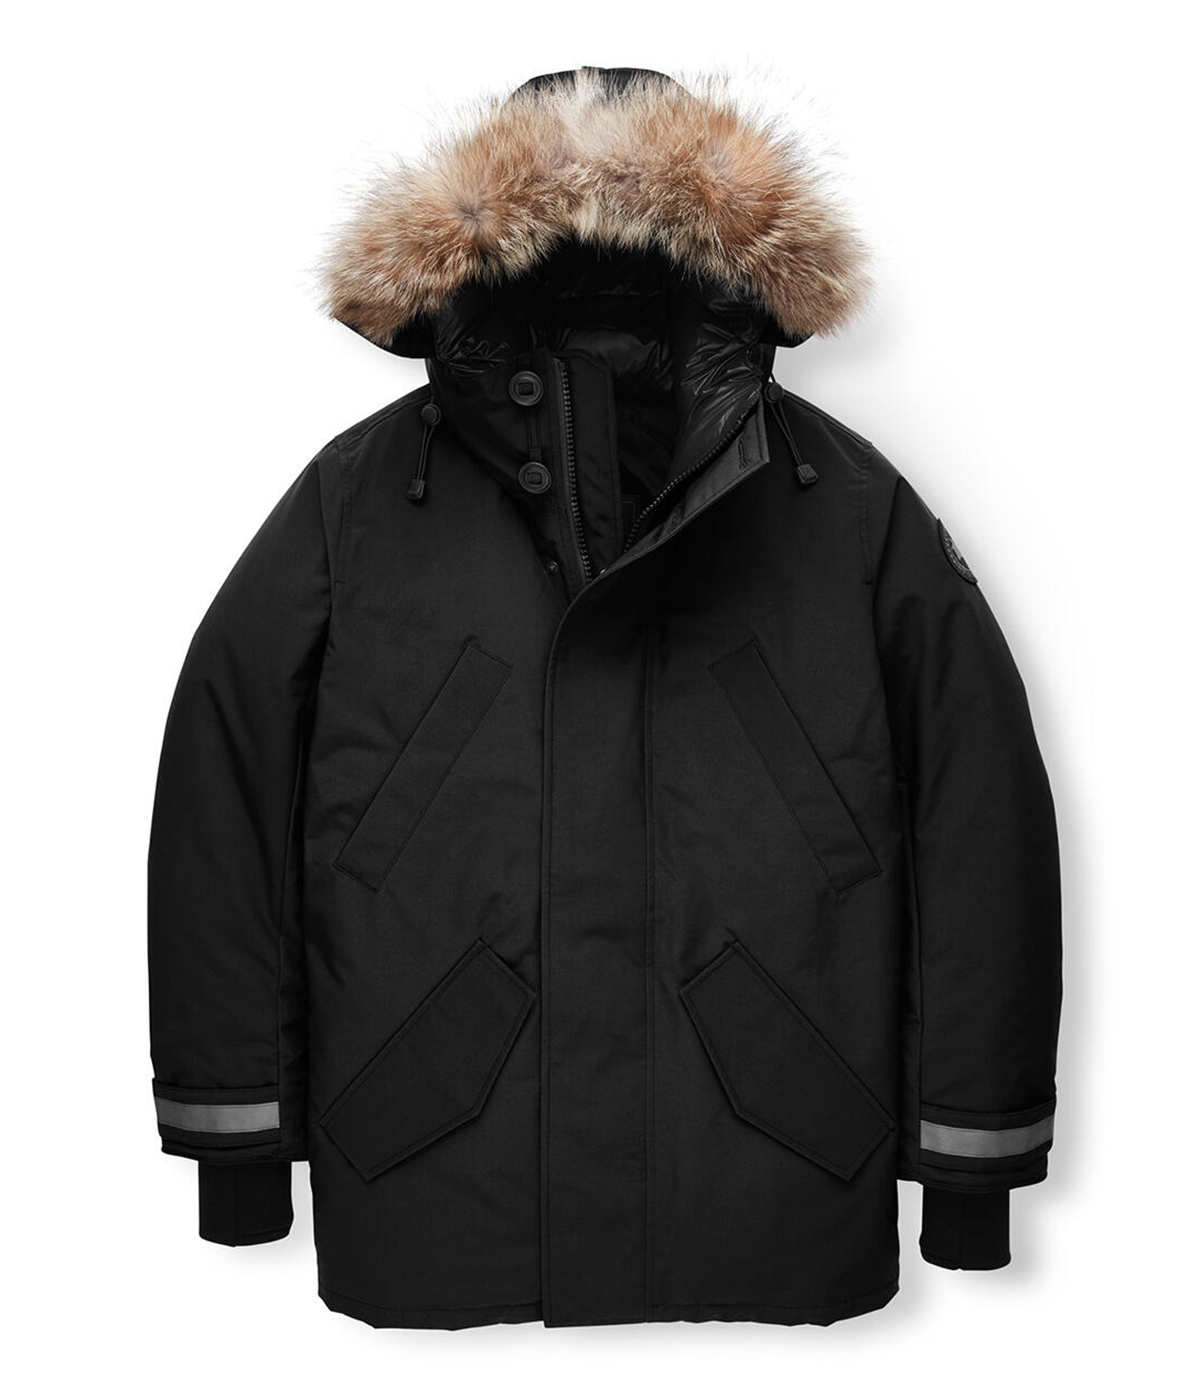 EDGEWOOD PARKA FF BLACK LABEL